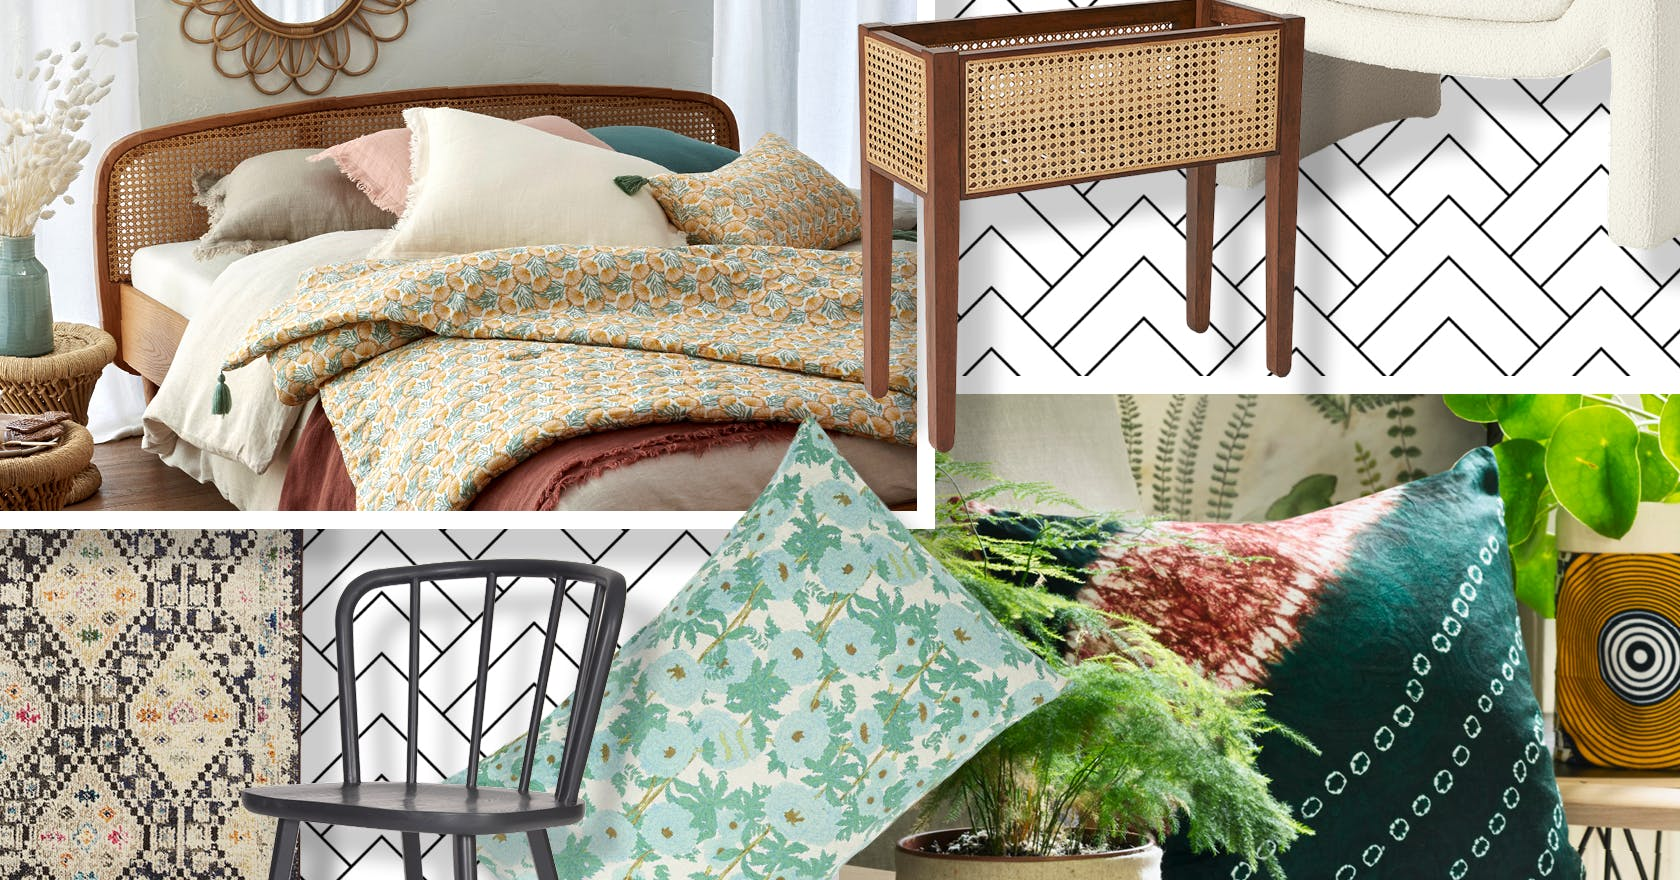 12 of the best homeware buys on the market right now, according to Kate Watson-Smyth